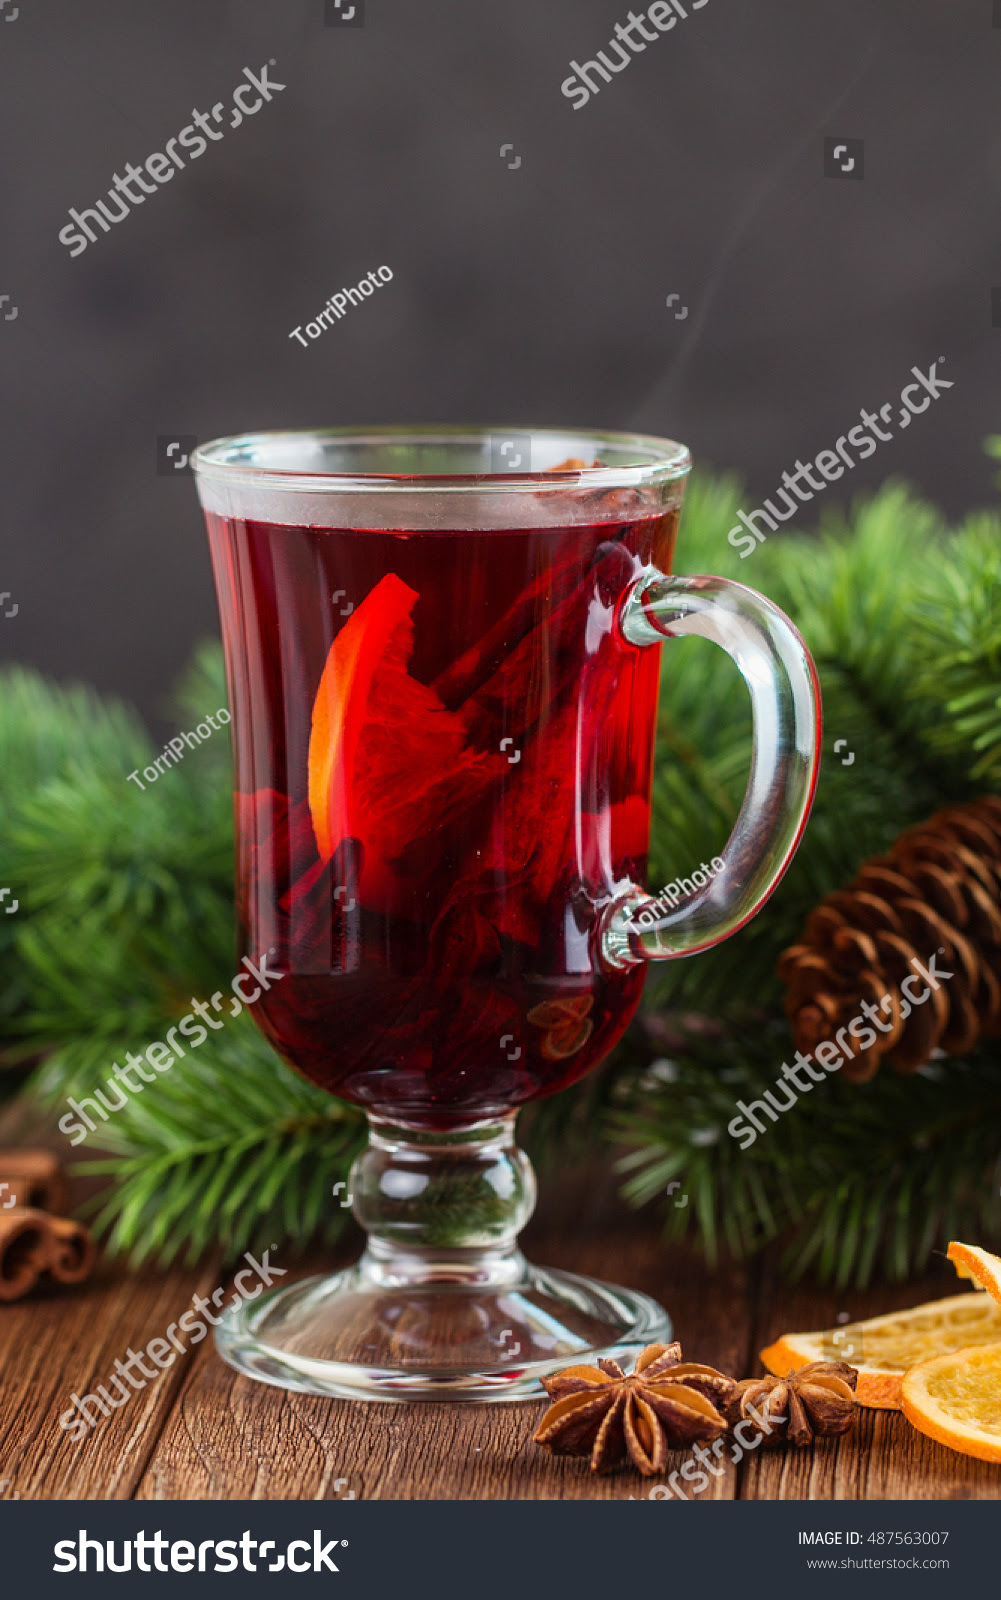 Mulled wine with spices on Christmas rustic background with fir branch